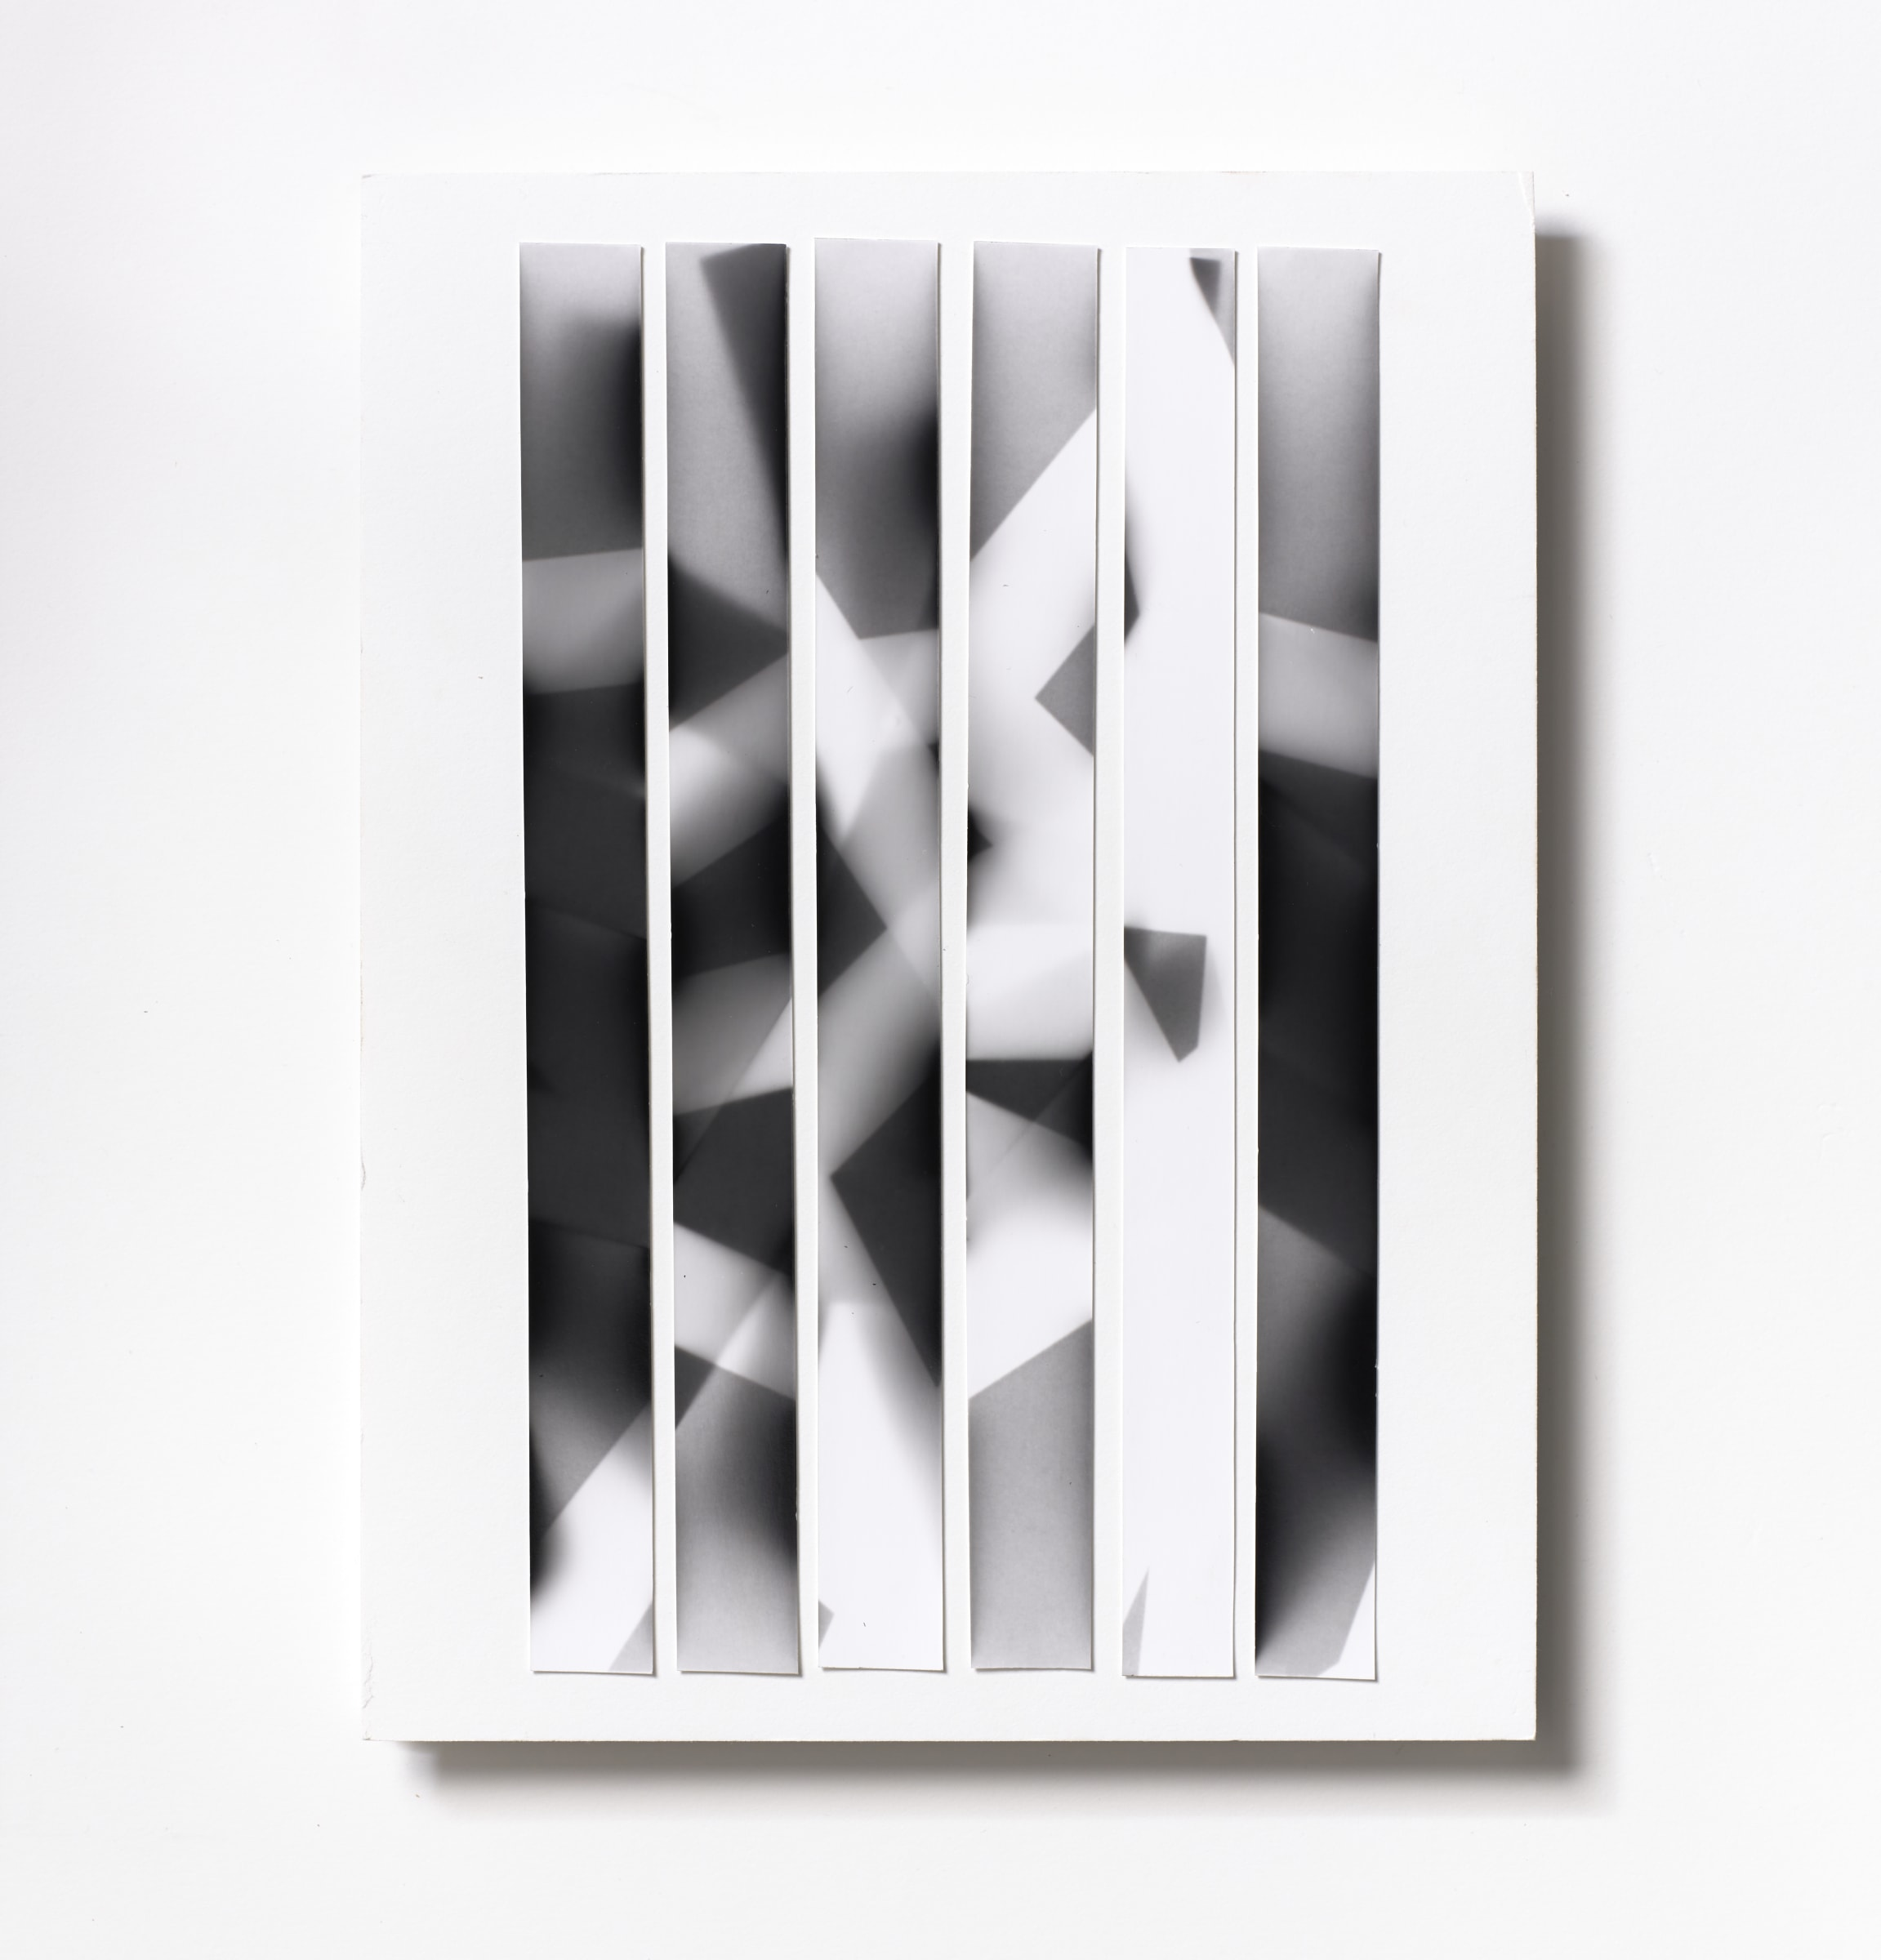 "<span class=""link fancybox-details-link""><a href=""/content/feature/121/artworks548/"">View Detail Page</a></span><div class=""medium"">Silver Gelatin Photogram Print Collage of six handmade 11"" x 7/8"" silver gelatin prints from film negatives on a 12 x 9 inch 8-ply museum board<br /> Print only<br /> Unique</div> <div class=""dimensions"">30.5 x 22.9 cm<br /> 12 x 9 in</div>"